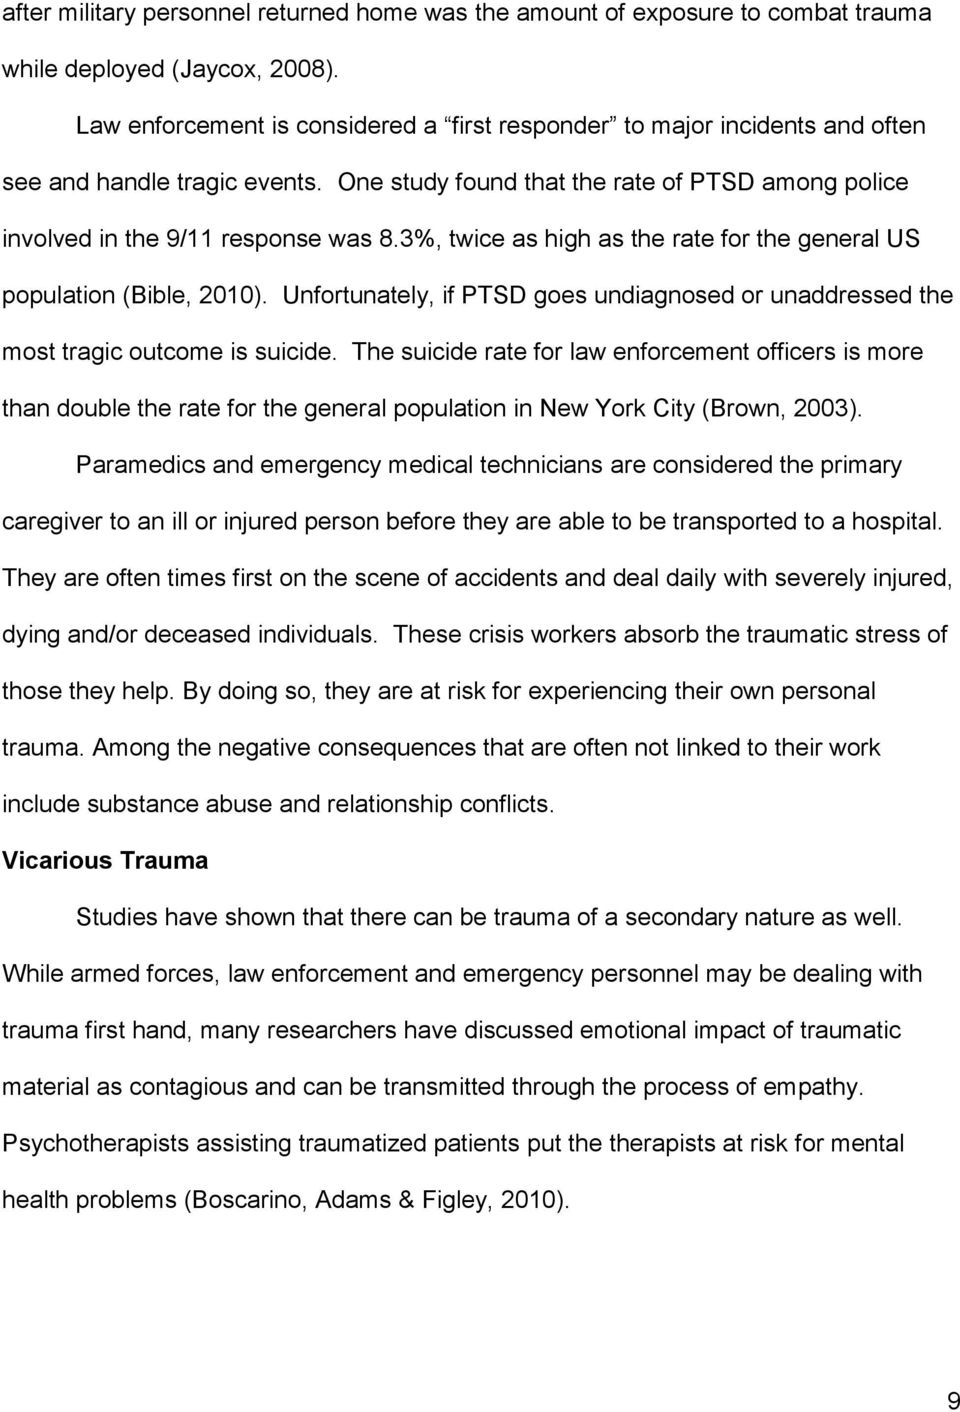 3%, twice as high as the rate for the general US population (Bible, 2010). Unfortunately, if PTSD goes undiagnosed or unaddressed the most tragic outcome is suicide.